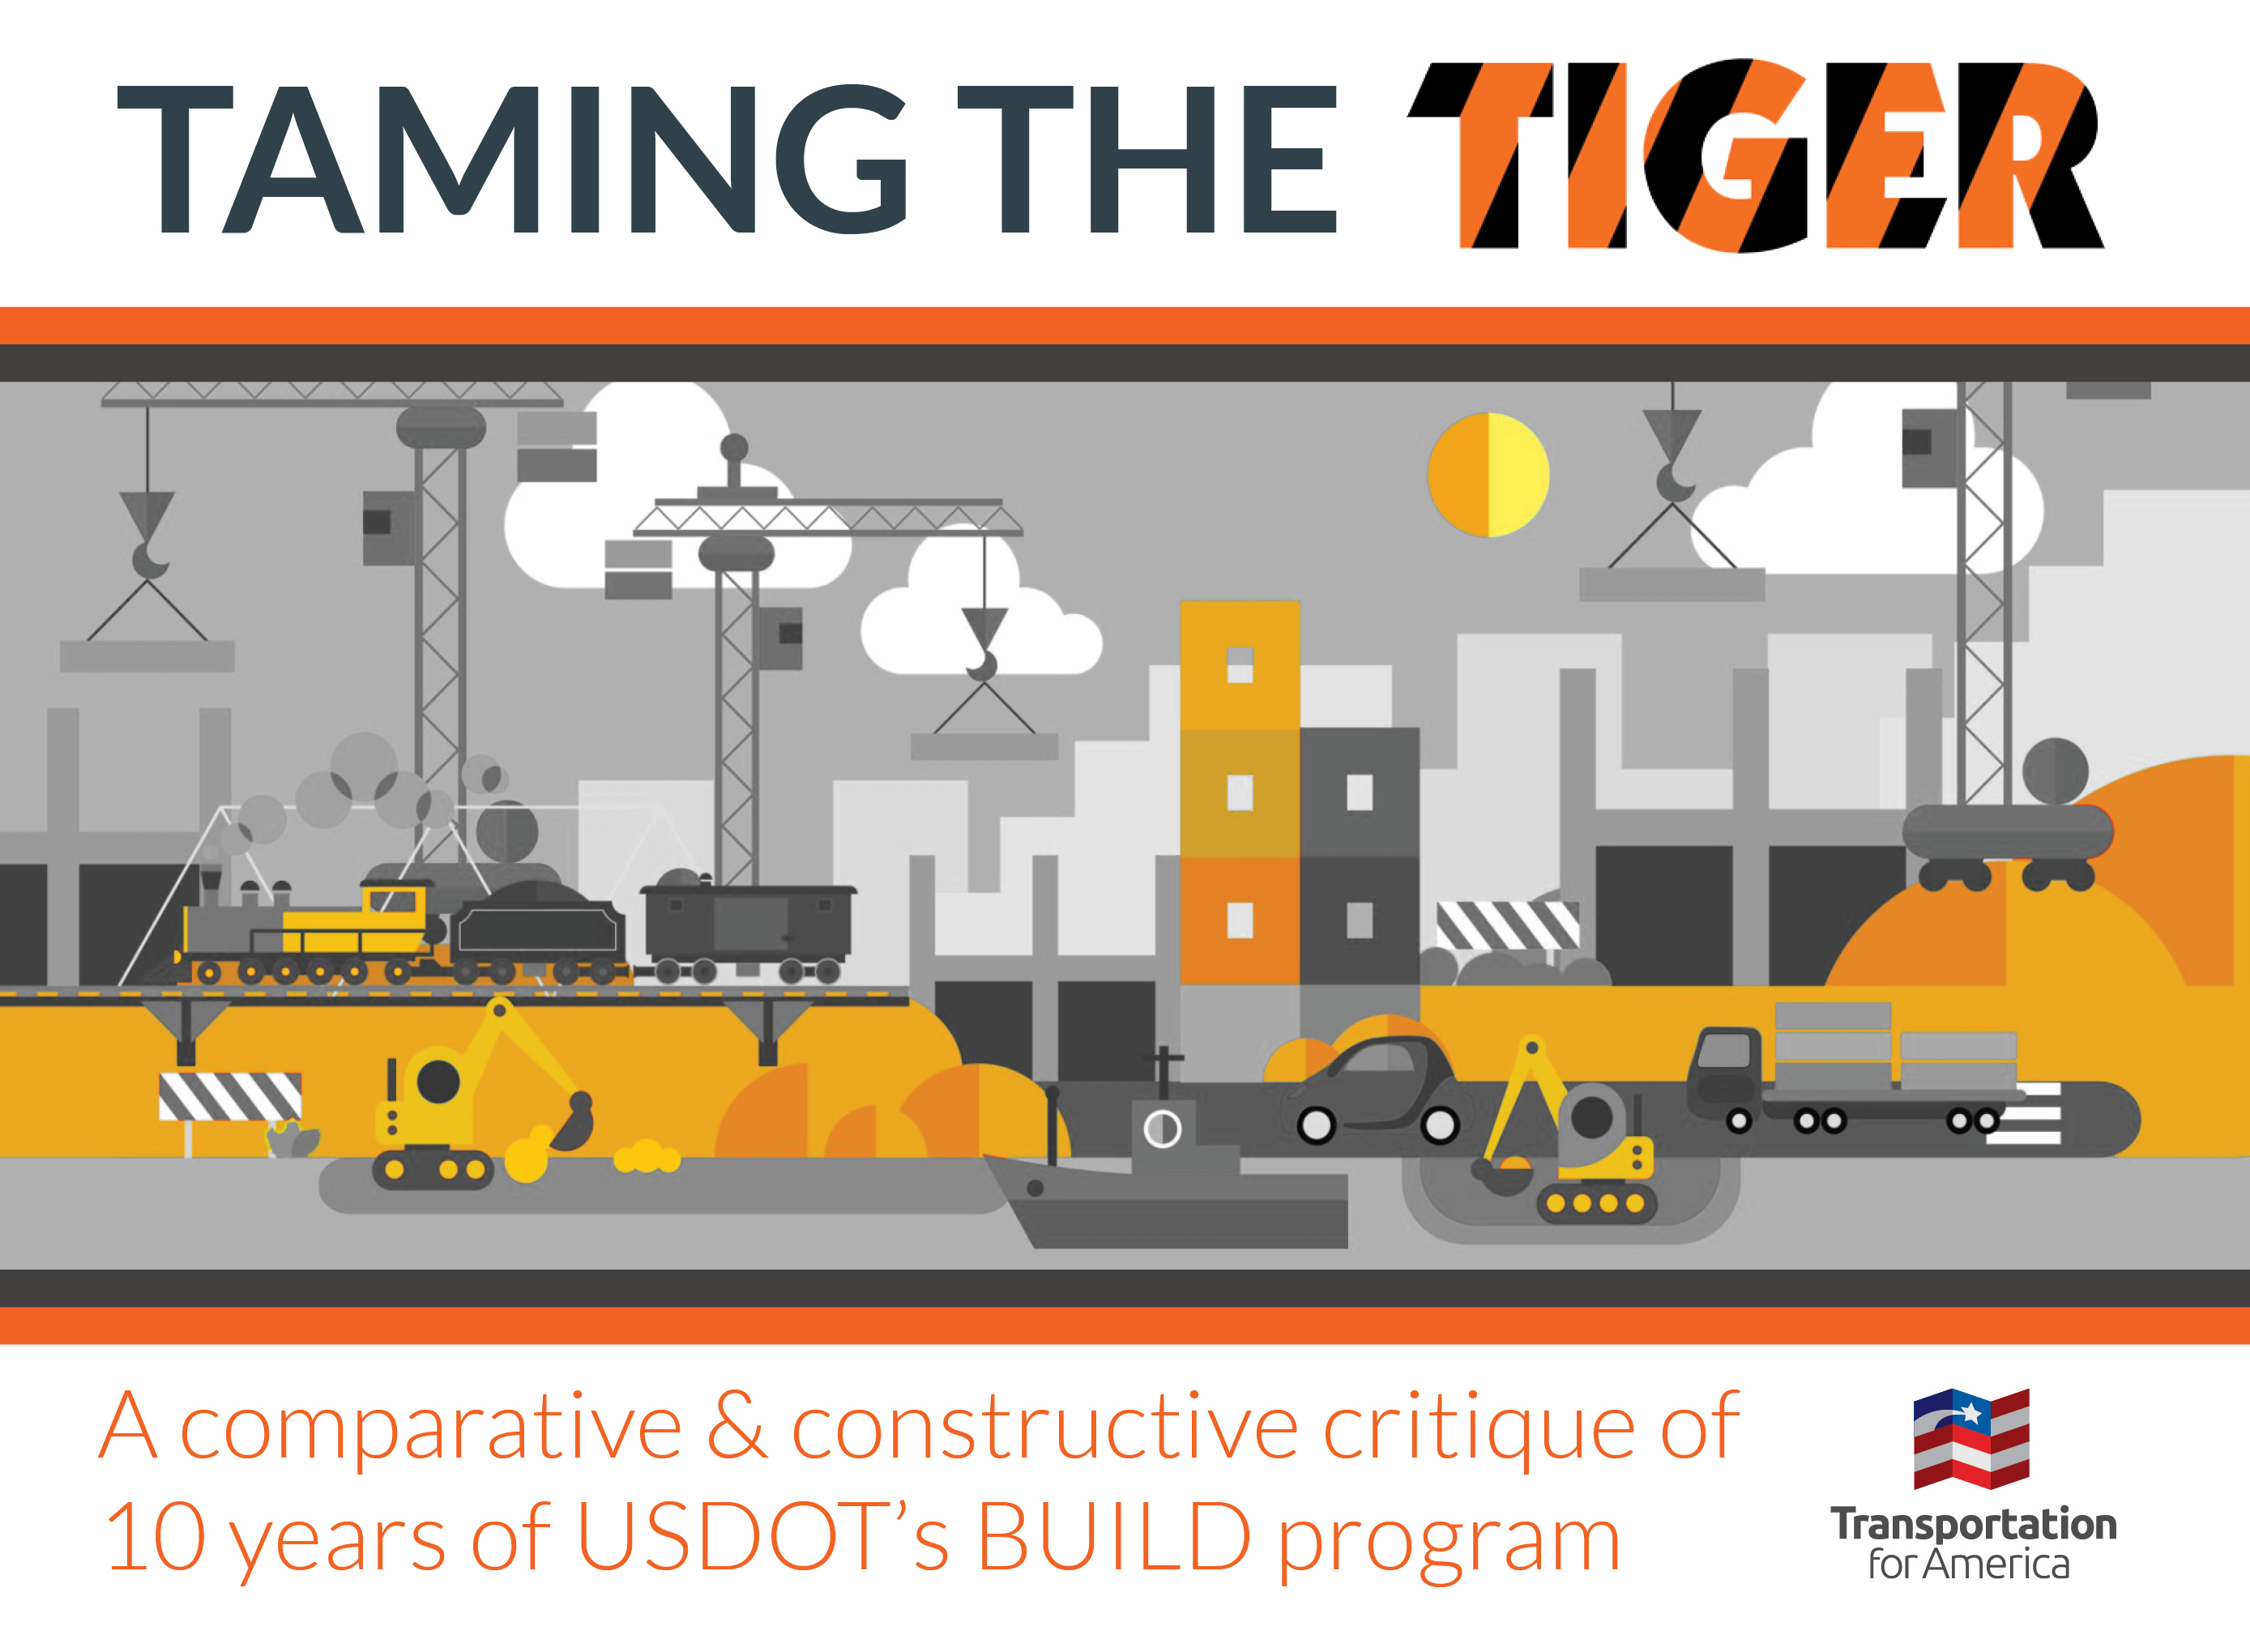 Taming the TIGER: Trump turns innovative program into another roads program